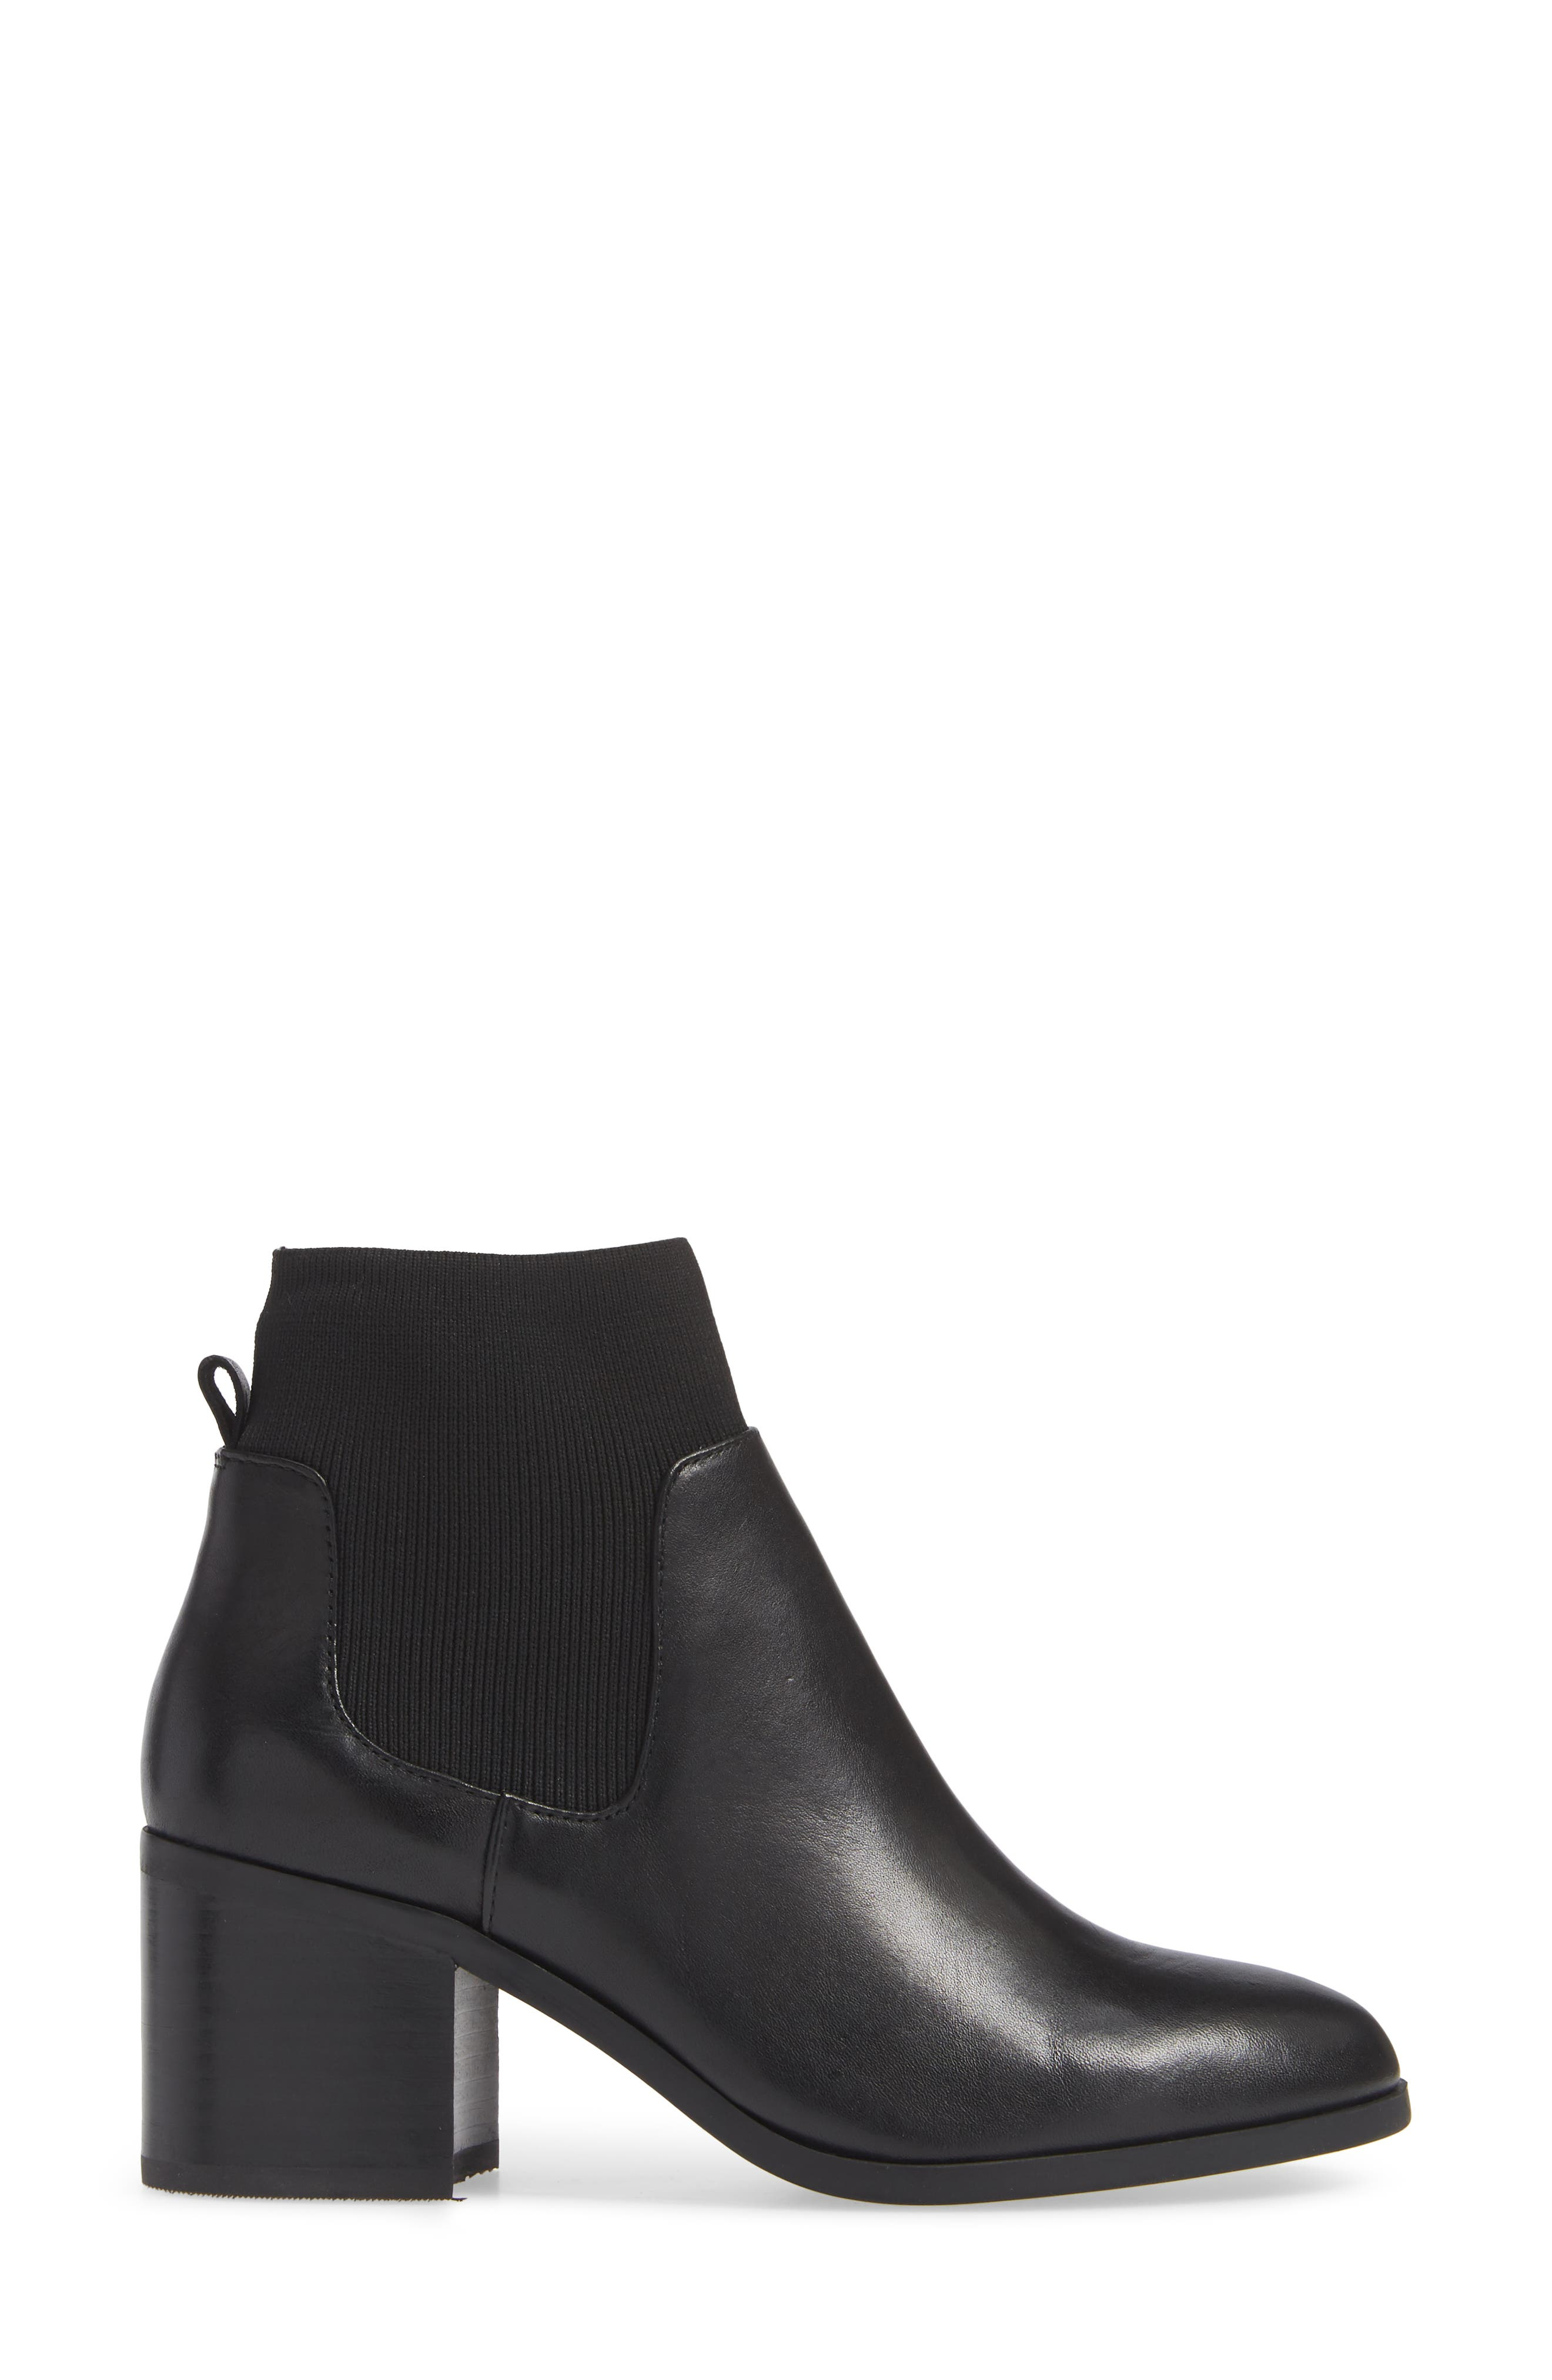 Erika Bootie,                             Alternate thumbnail 3, color,                             BLACK LEATHER